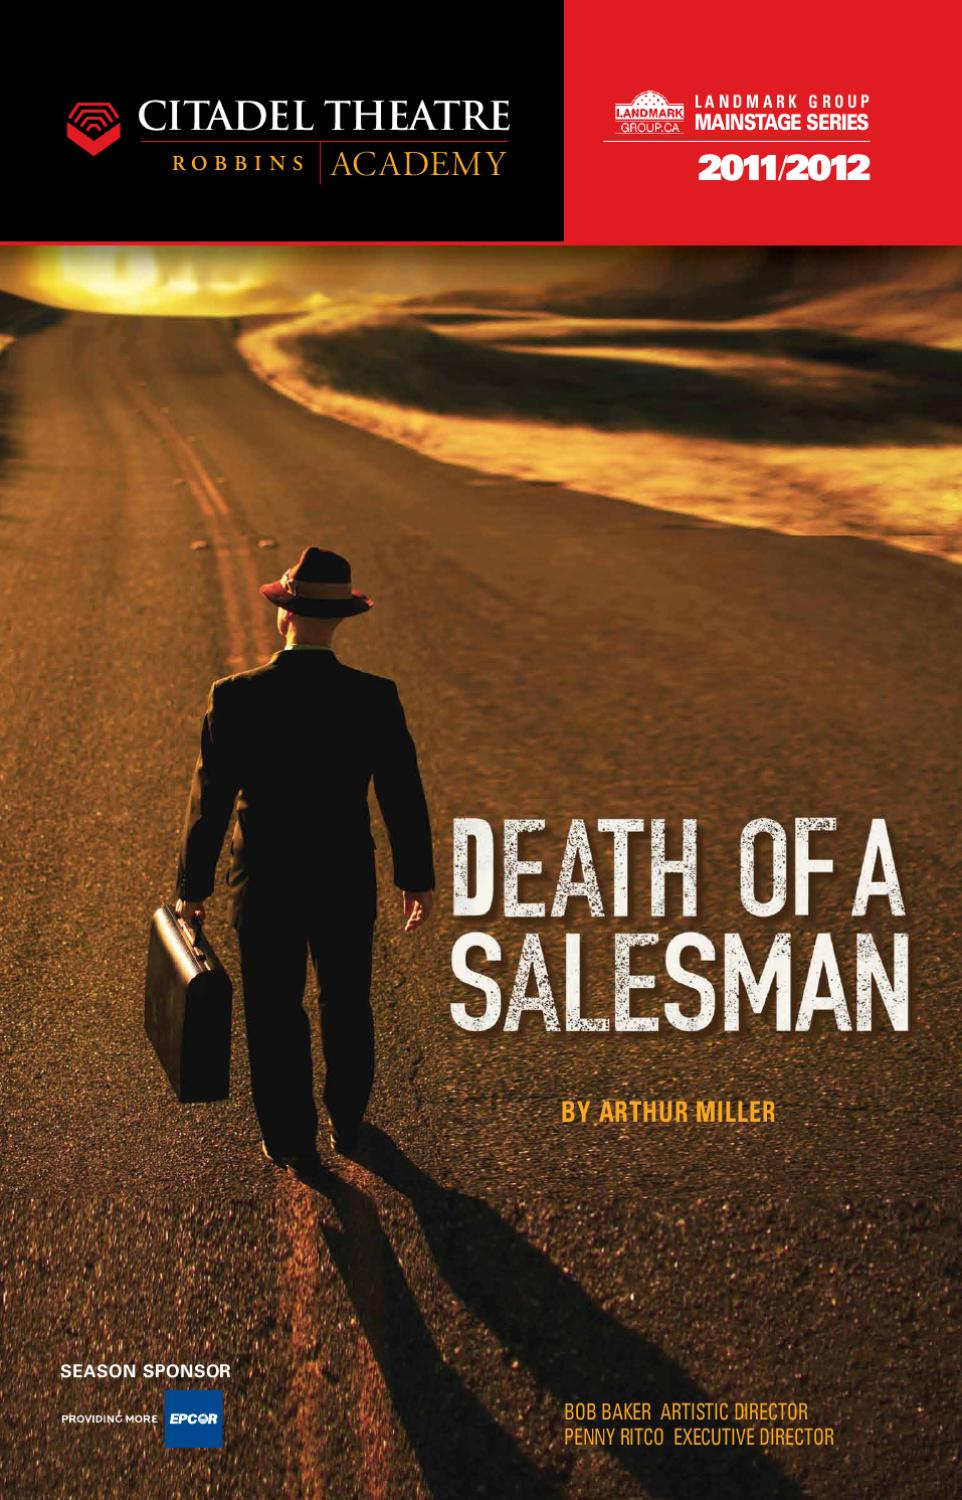 eng4u isu death of a salesman Fagstoff: death of a salesman is one of the world's most performed plays it was first staged in new york in 1949, and has since then been.